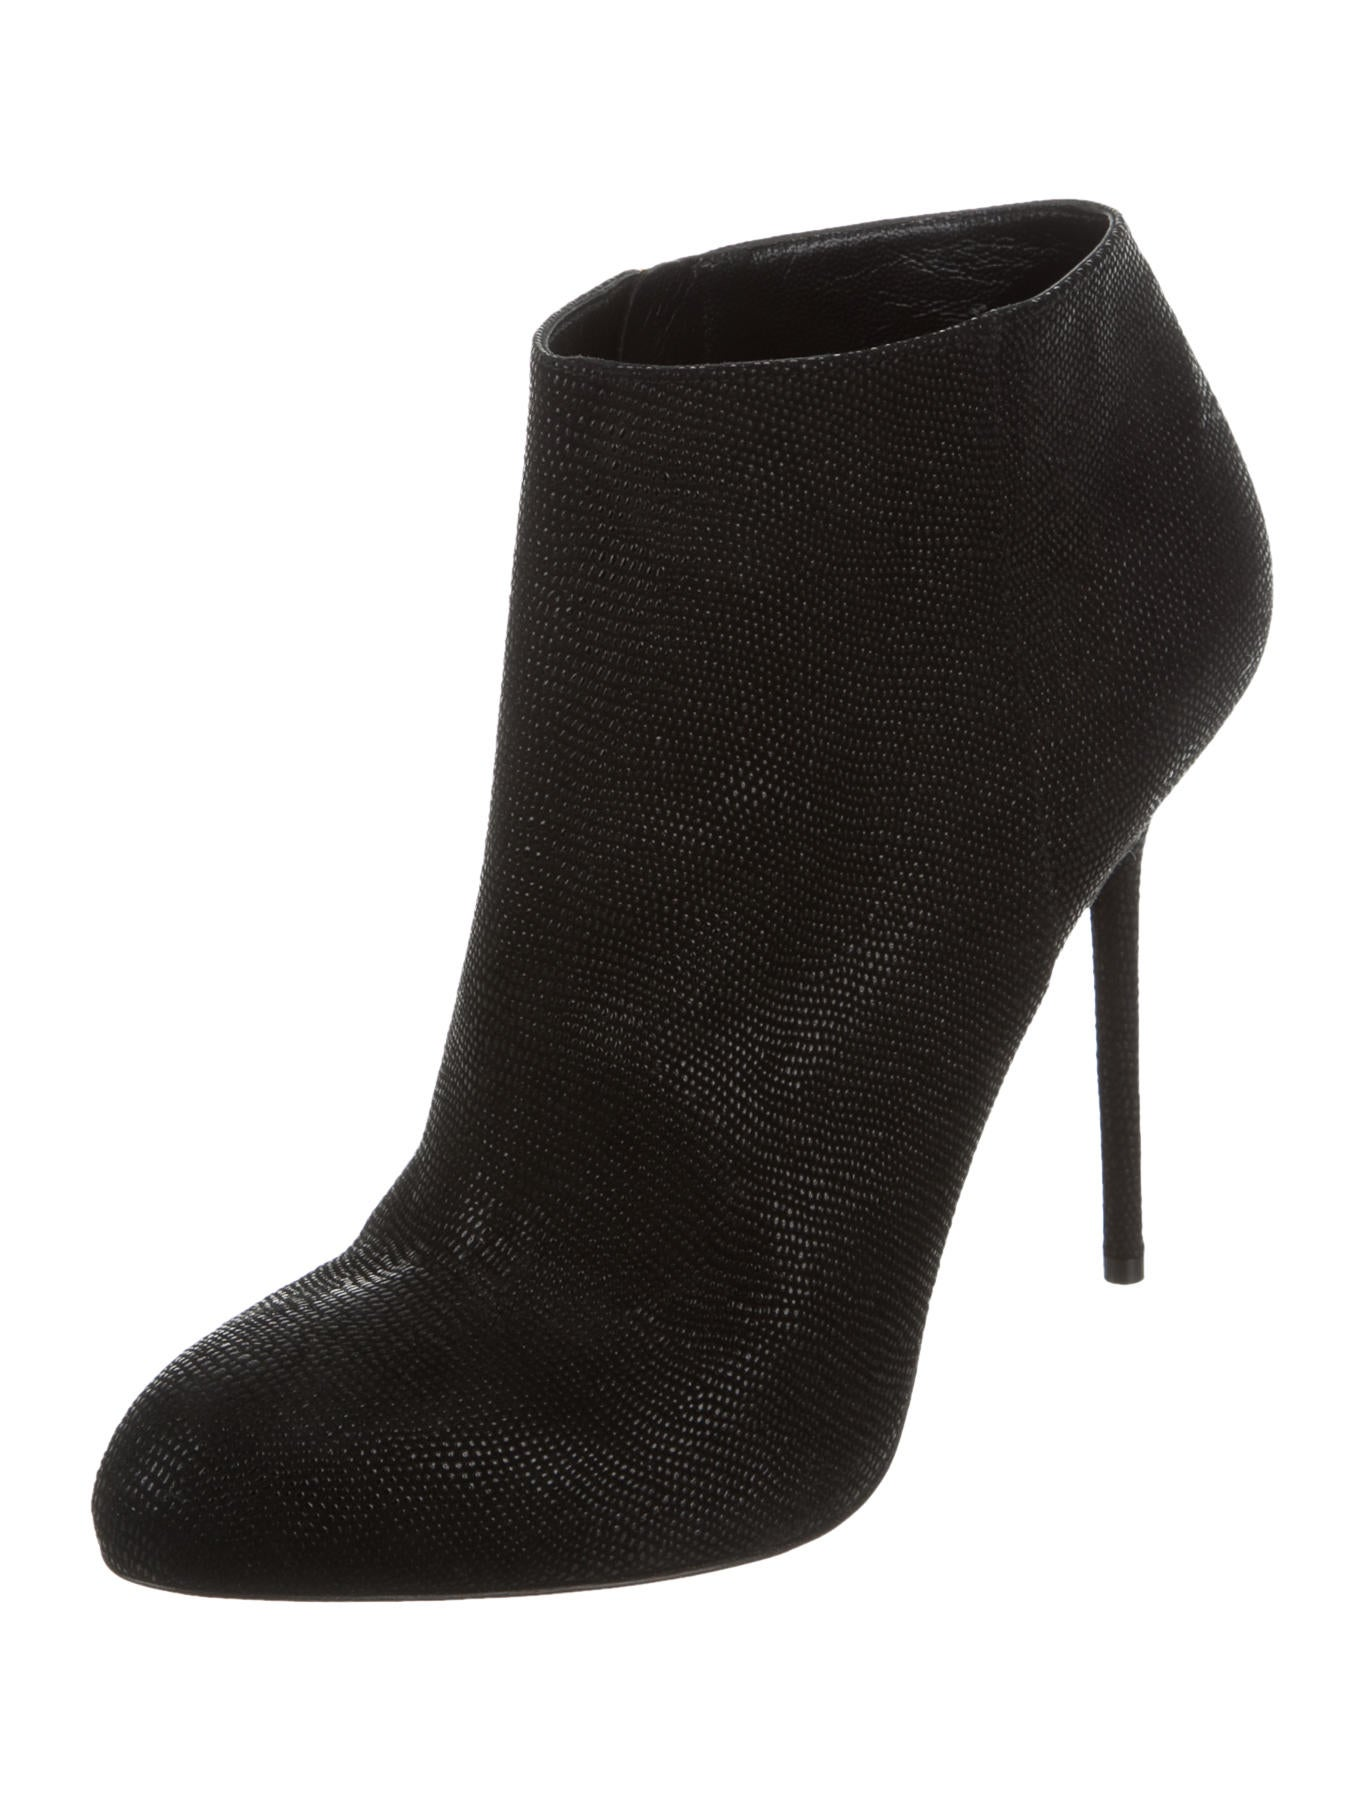 sergio textured suede ankle boots shoes ser27634